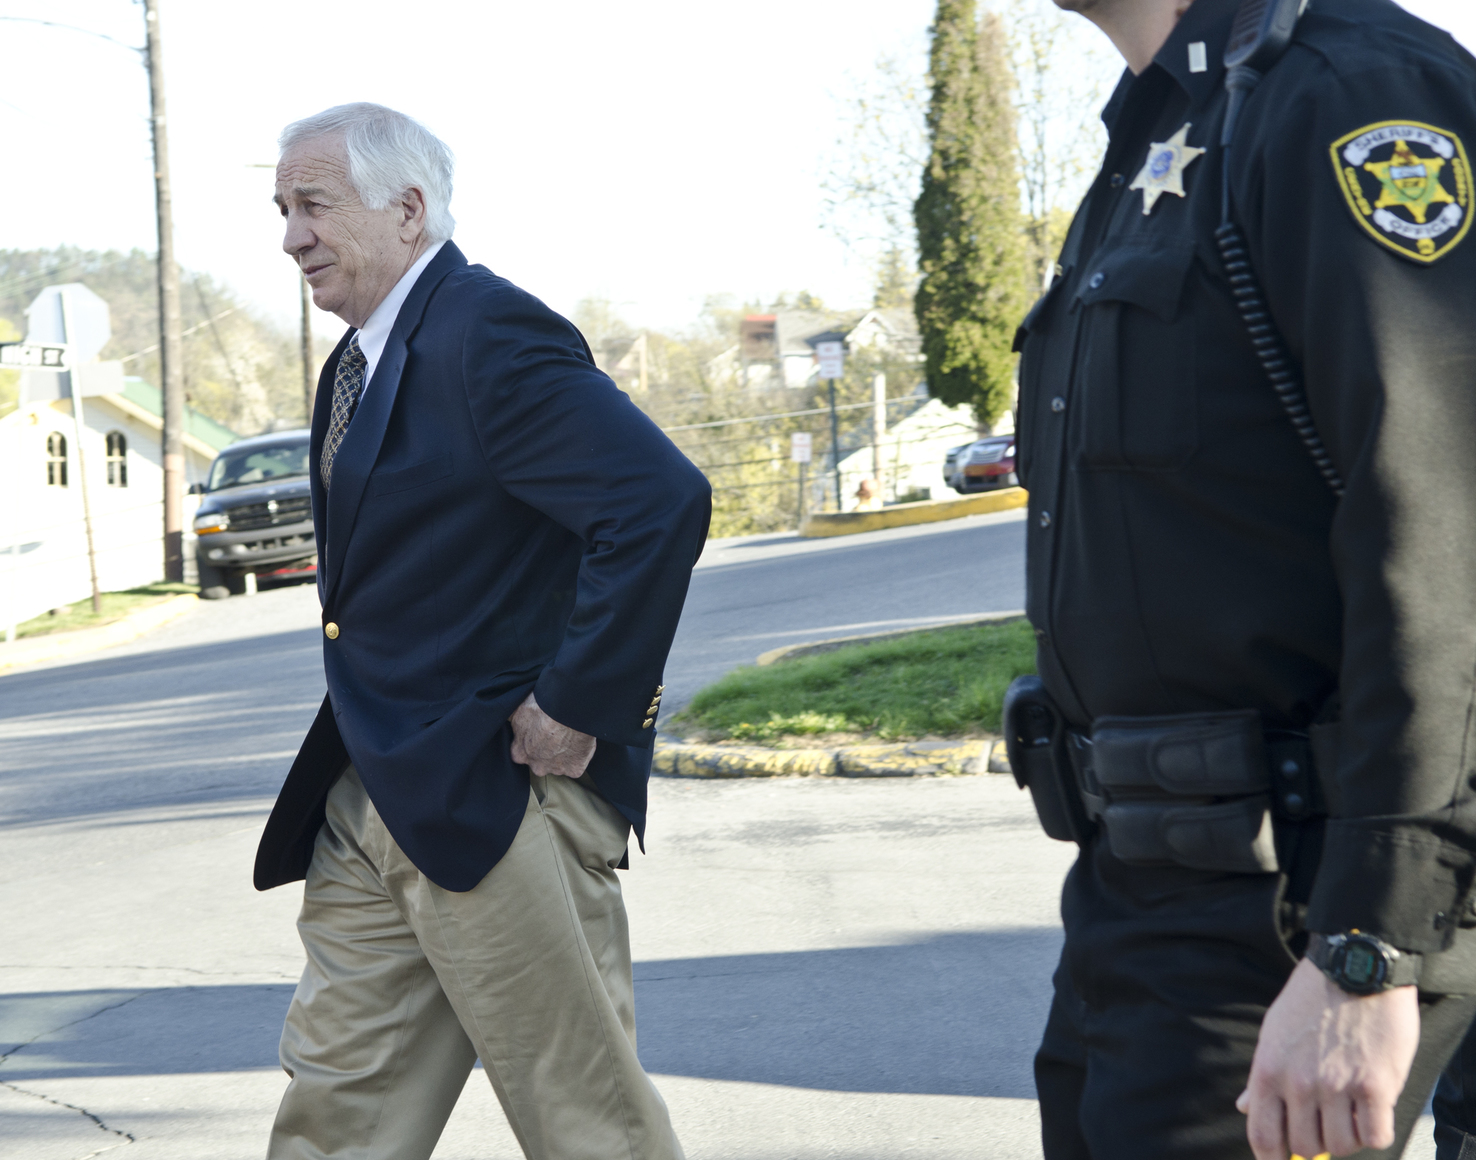 Sandusky Accusers File Motions to Remain Anonymous - Onward State